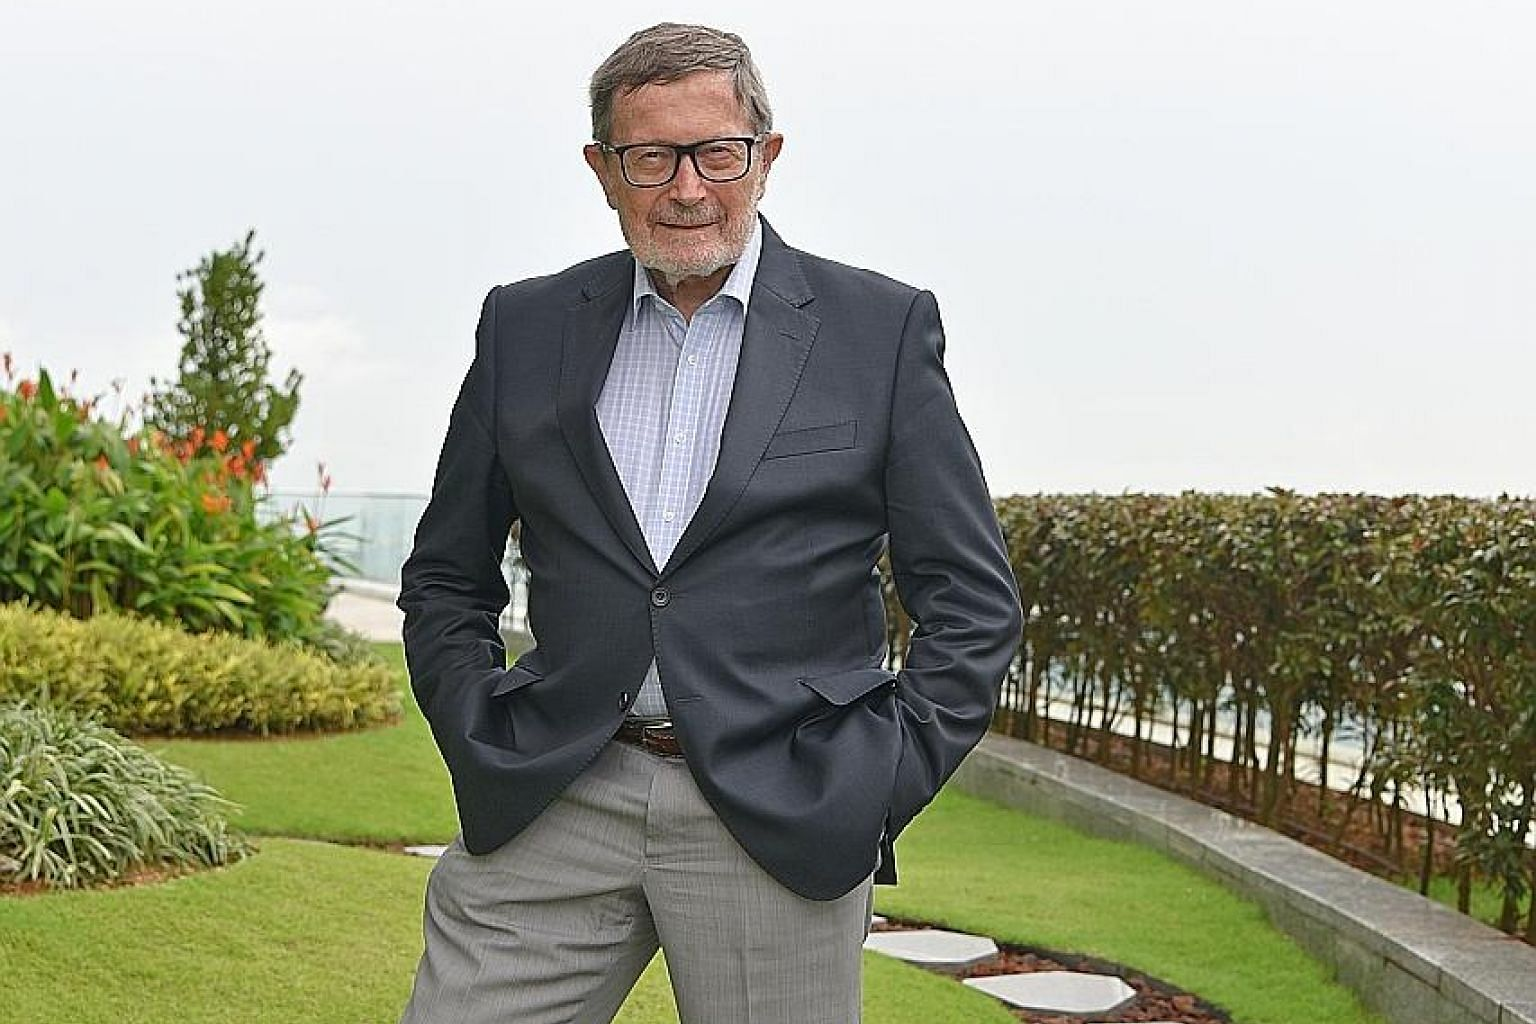 Dr Alex Matter is stepping down after nearly a decade helming the Experimental Therapeutics Centre at A*Star. Known as the father of targeted cancer therapies, he was one of the big names wooed here to drive Singapore's biomedical industry.